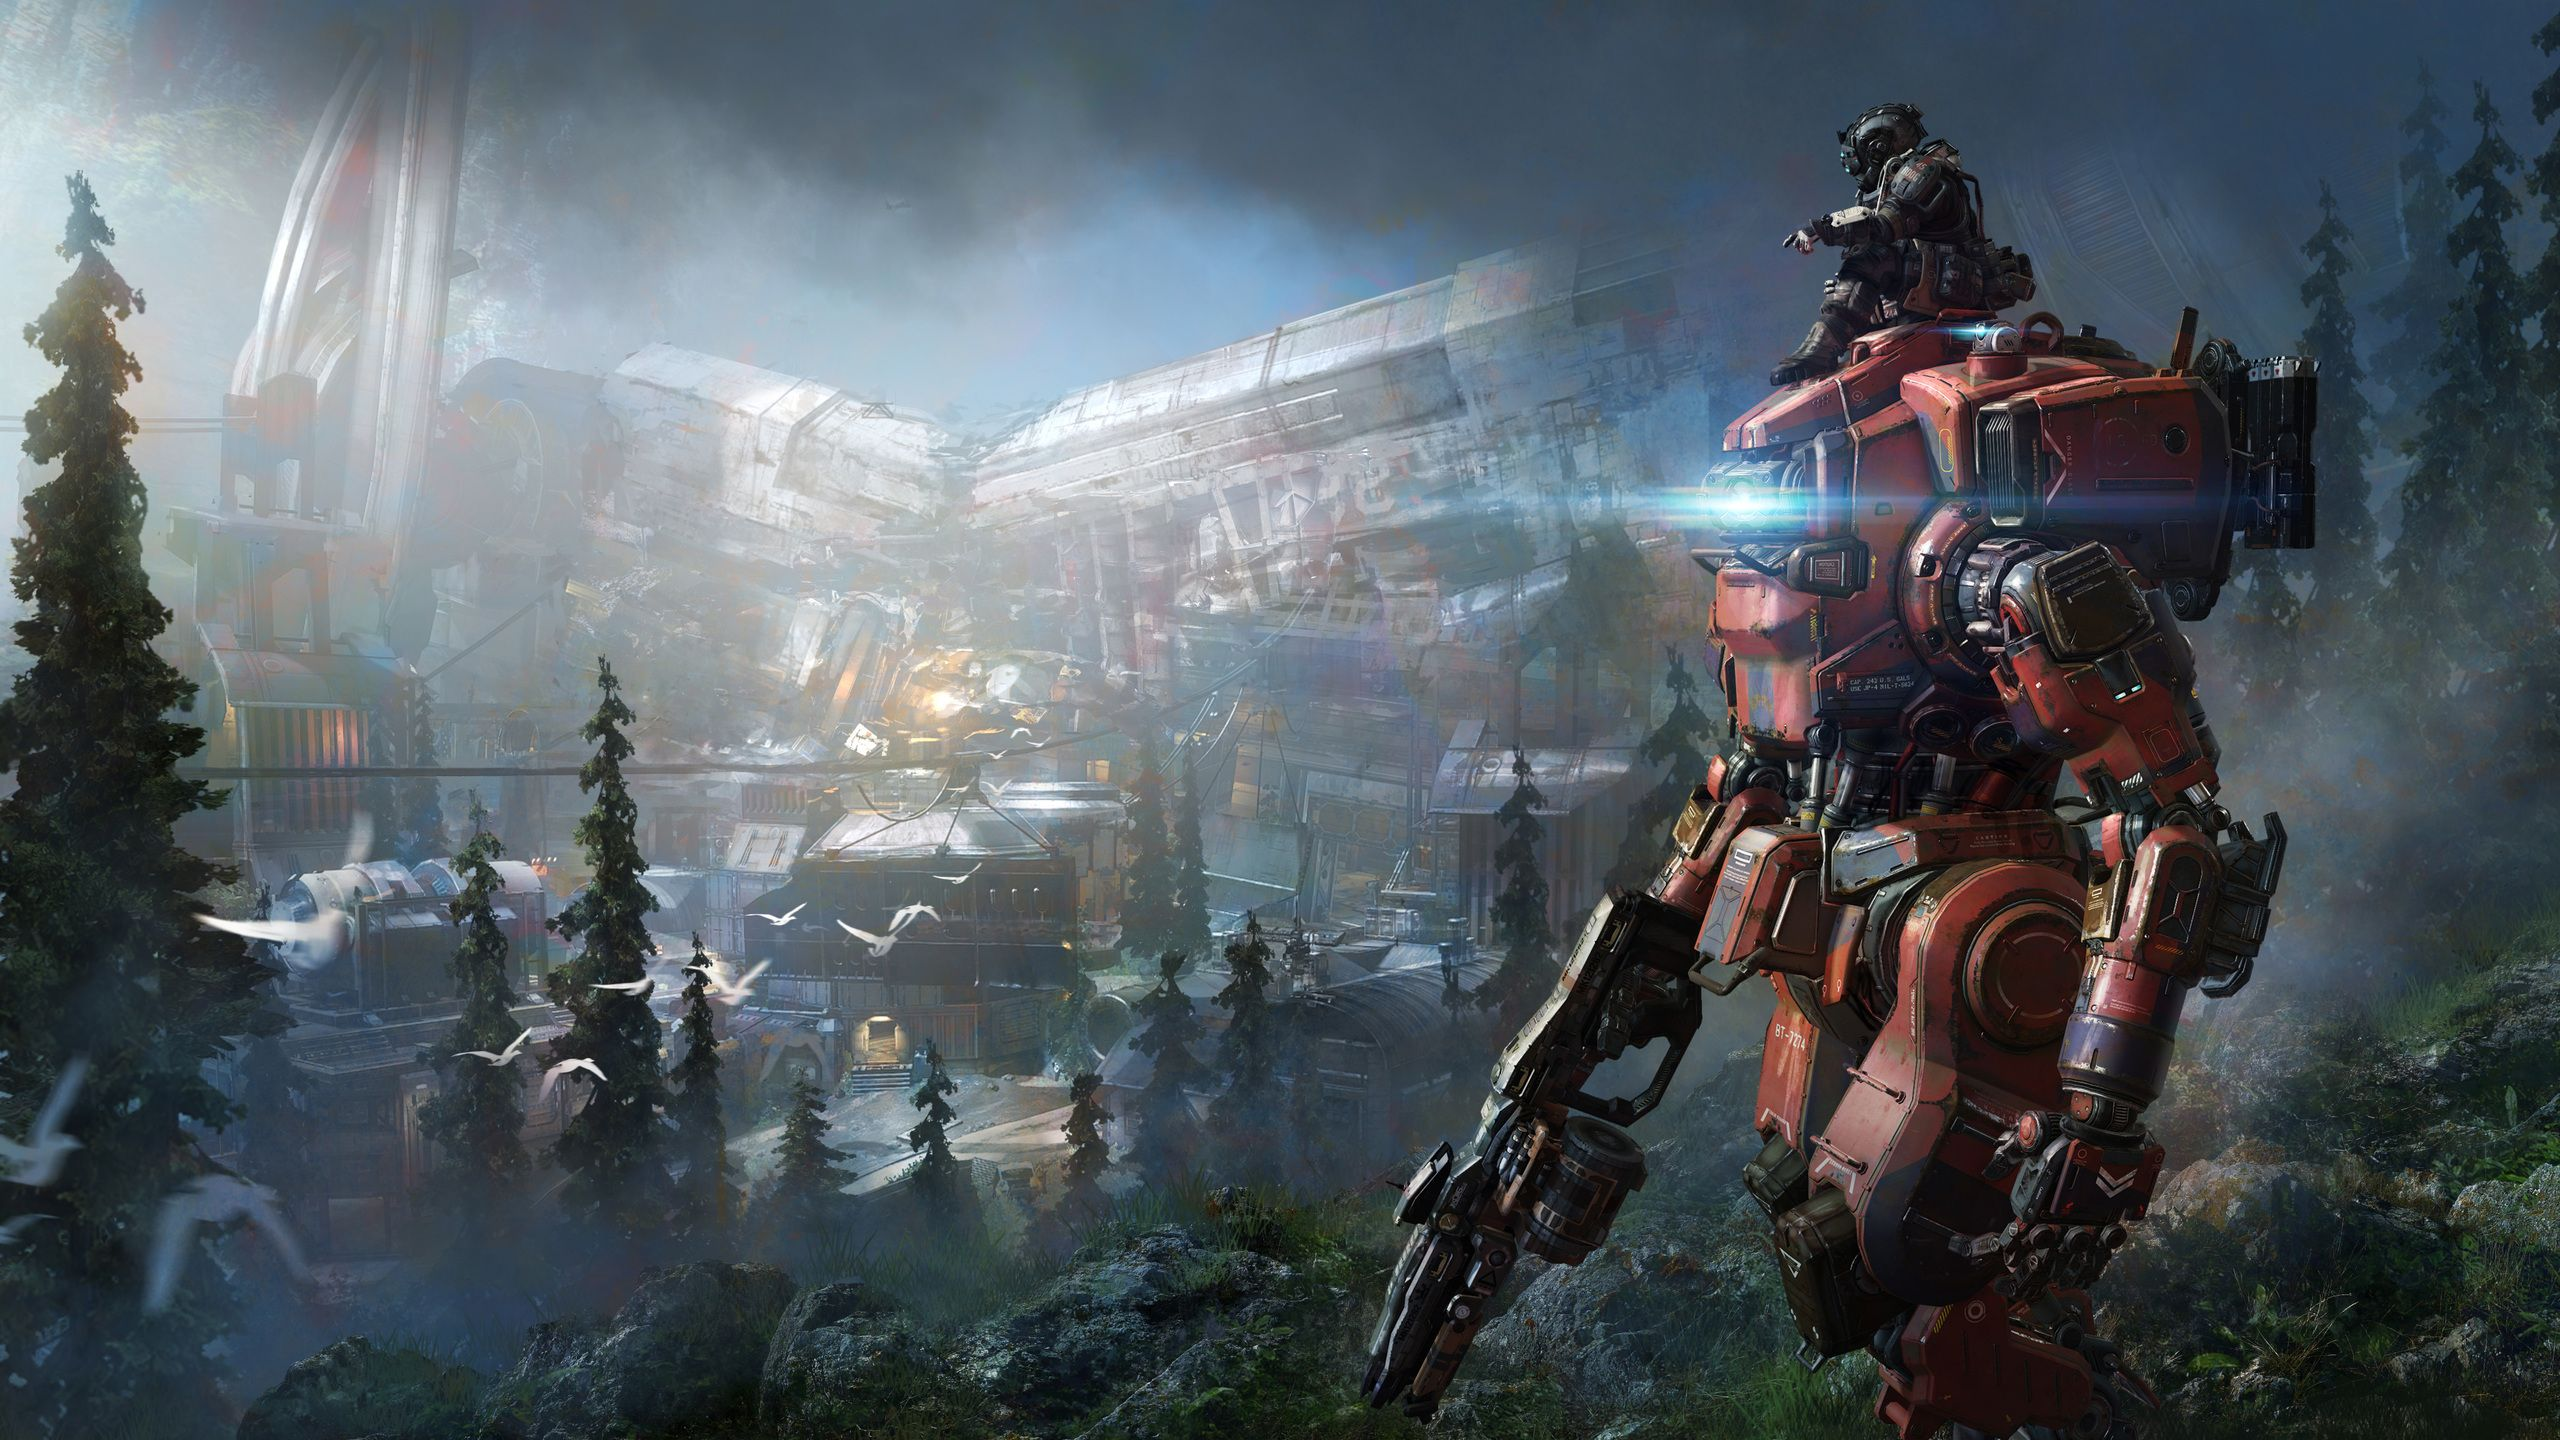 Free Babes Games titanfall gaming ultra hd wallpapers - top free titanfall